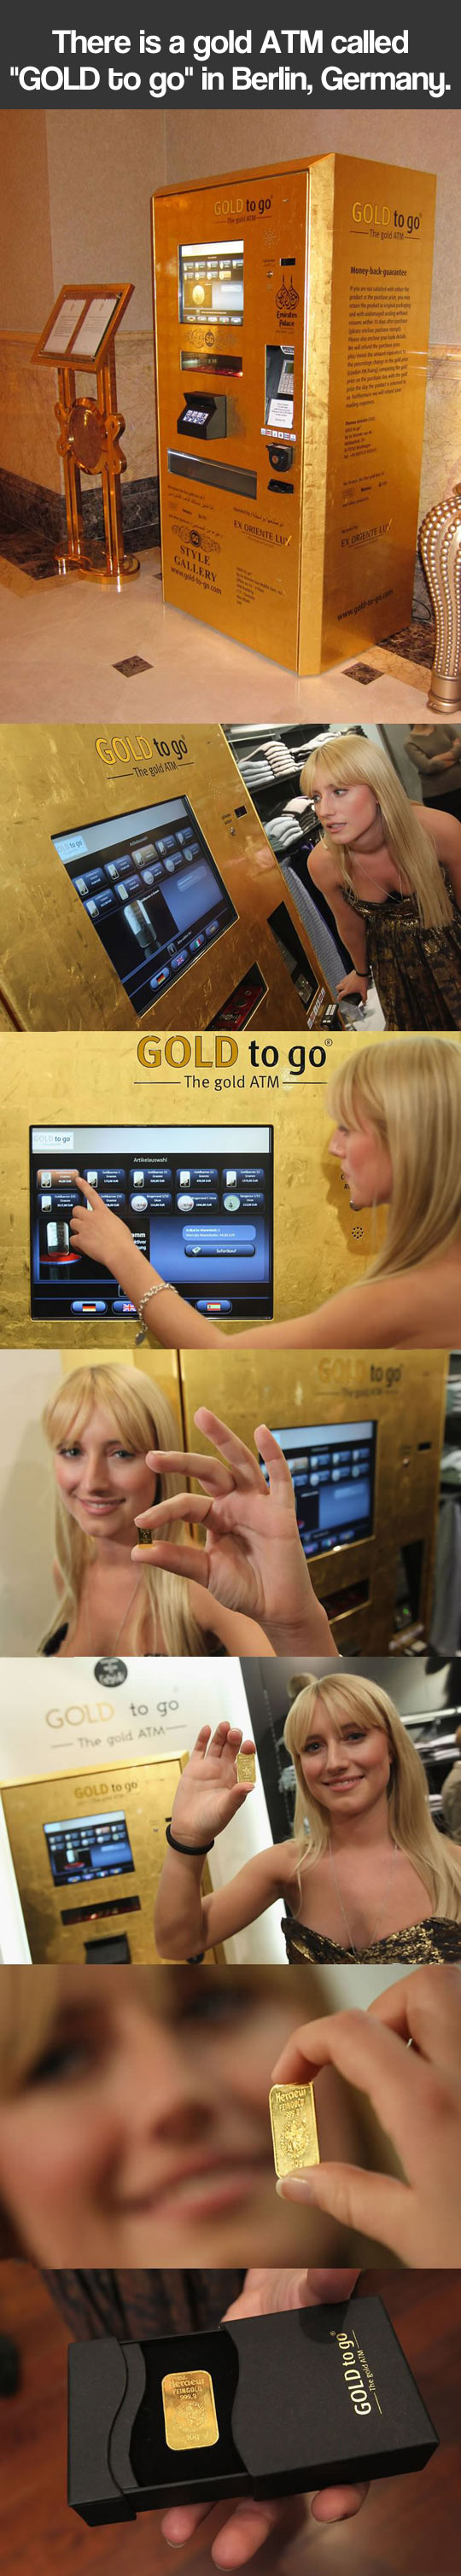 cool-gold-ATM-Berlin-Germany